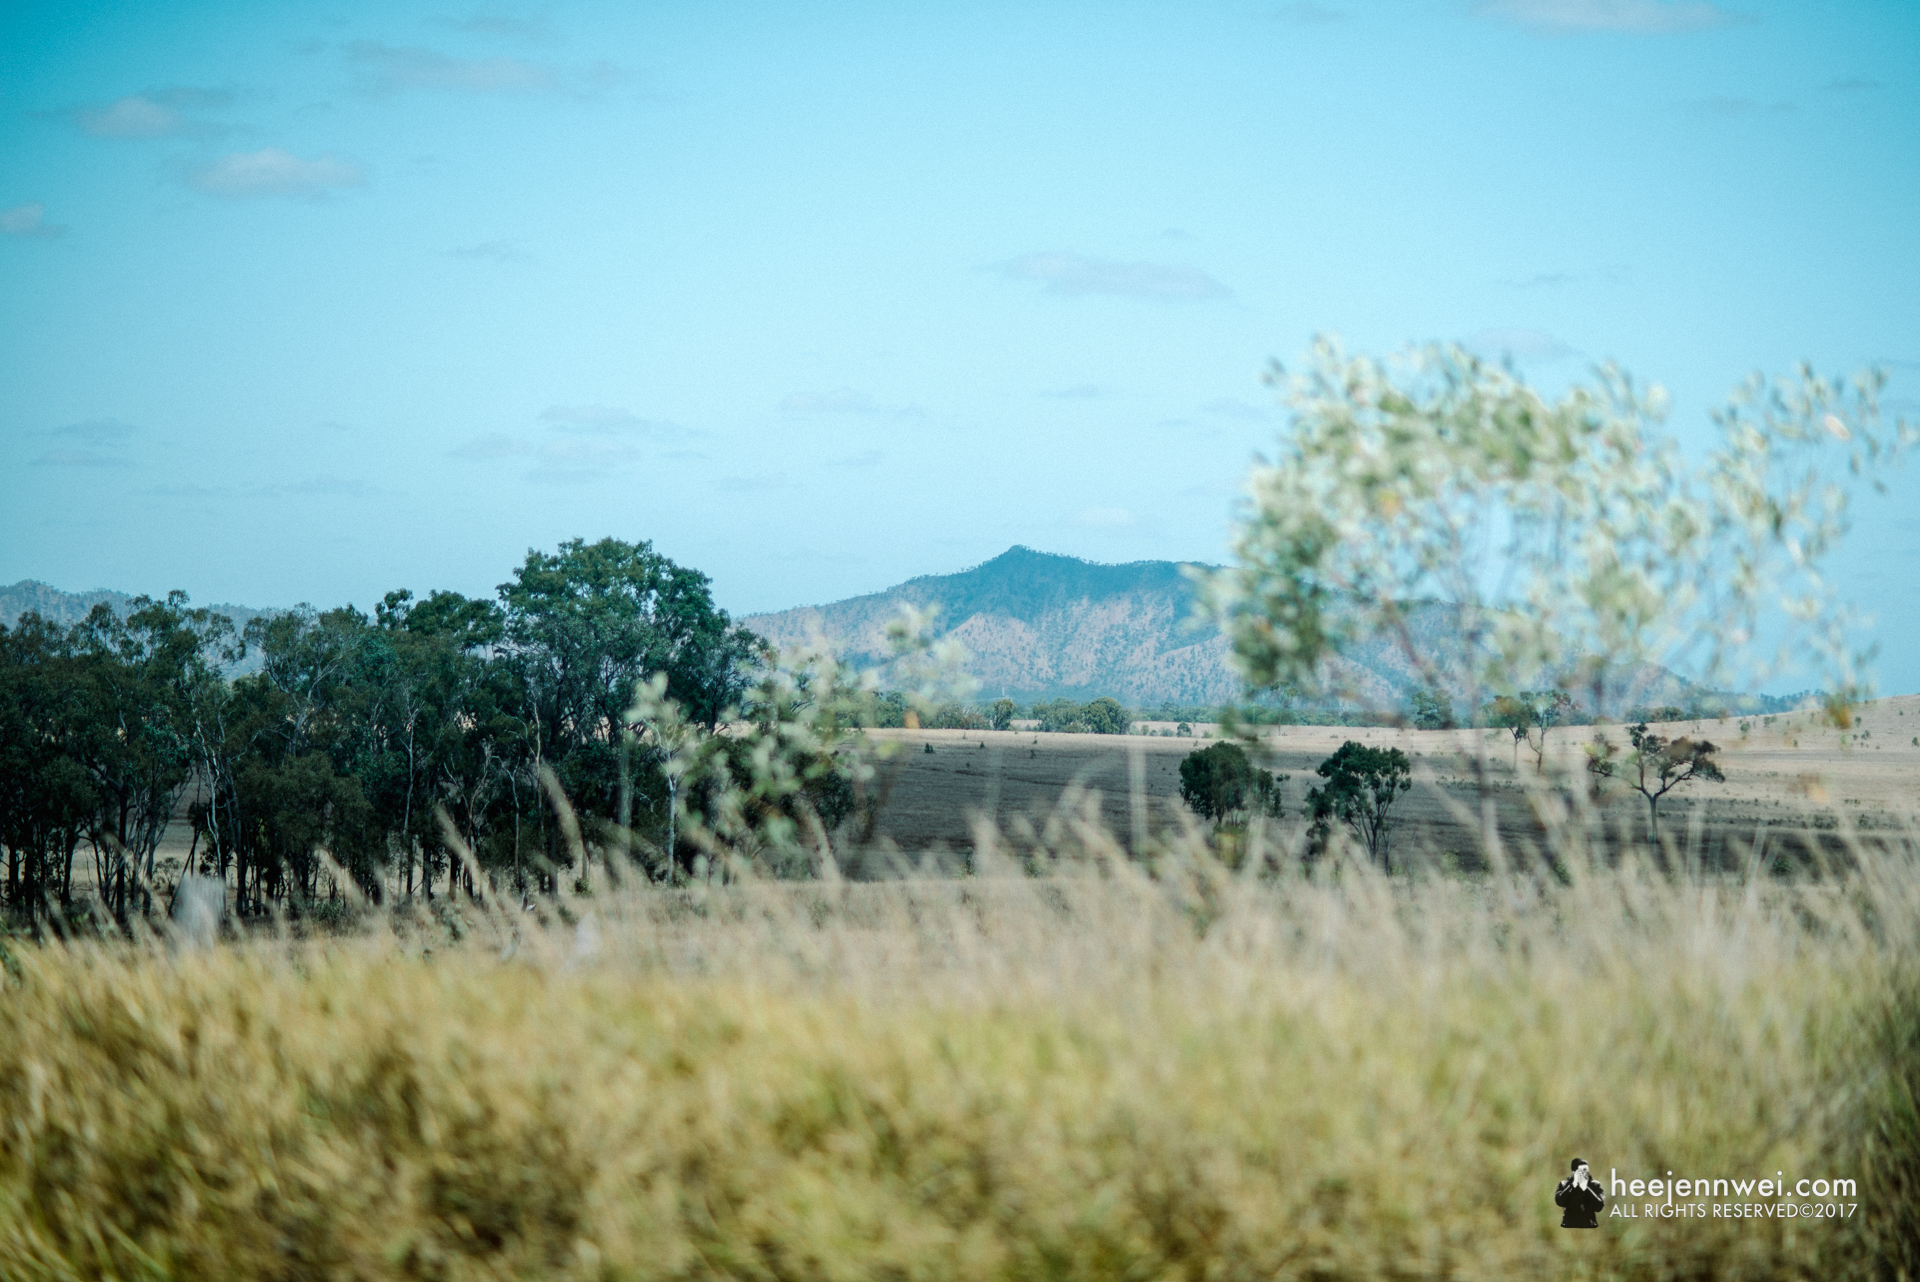 Rockhampton to Mackay is one of the most boring 3.5 hrs drive. Take a rest if tired, survive this drive, you're a hero!